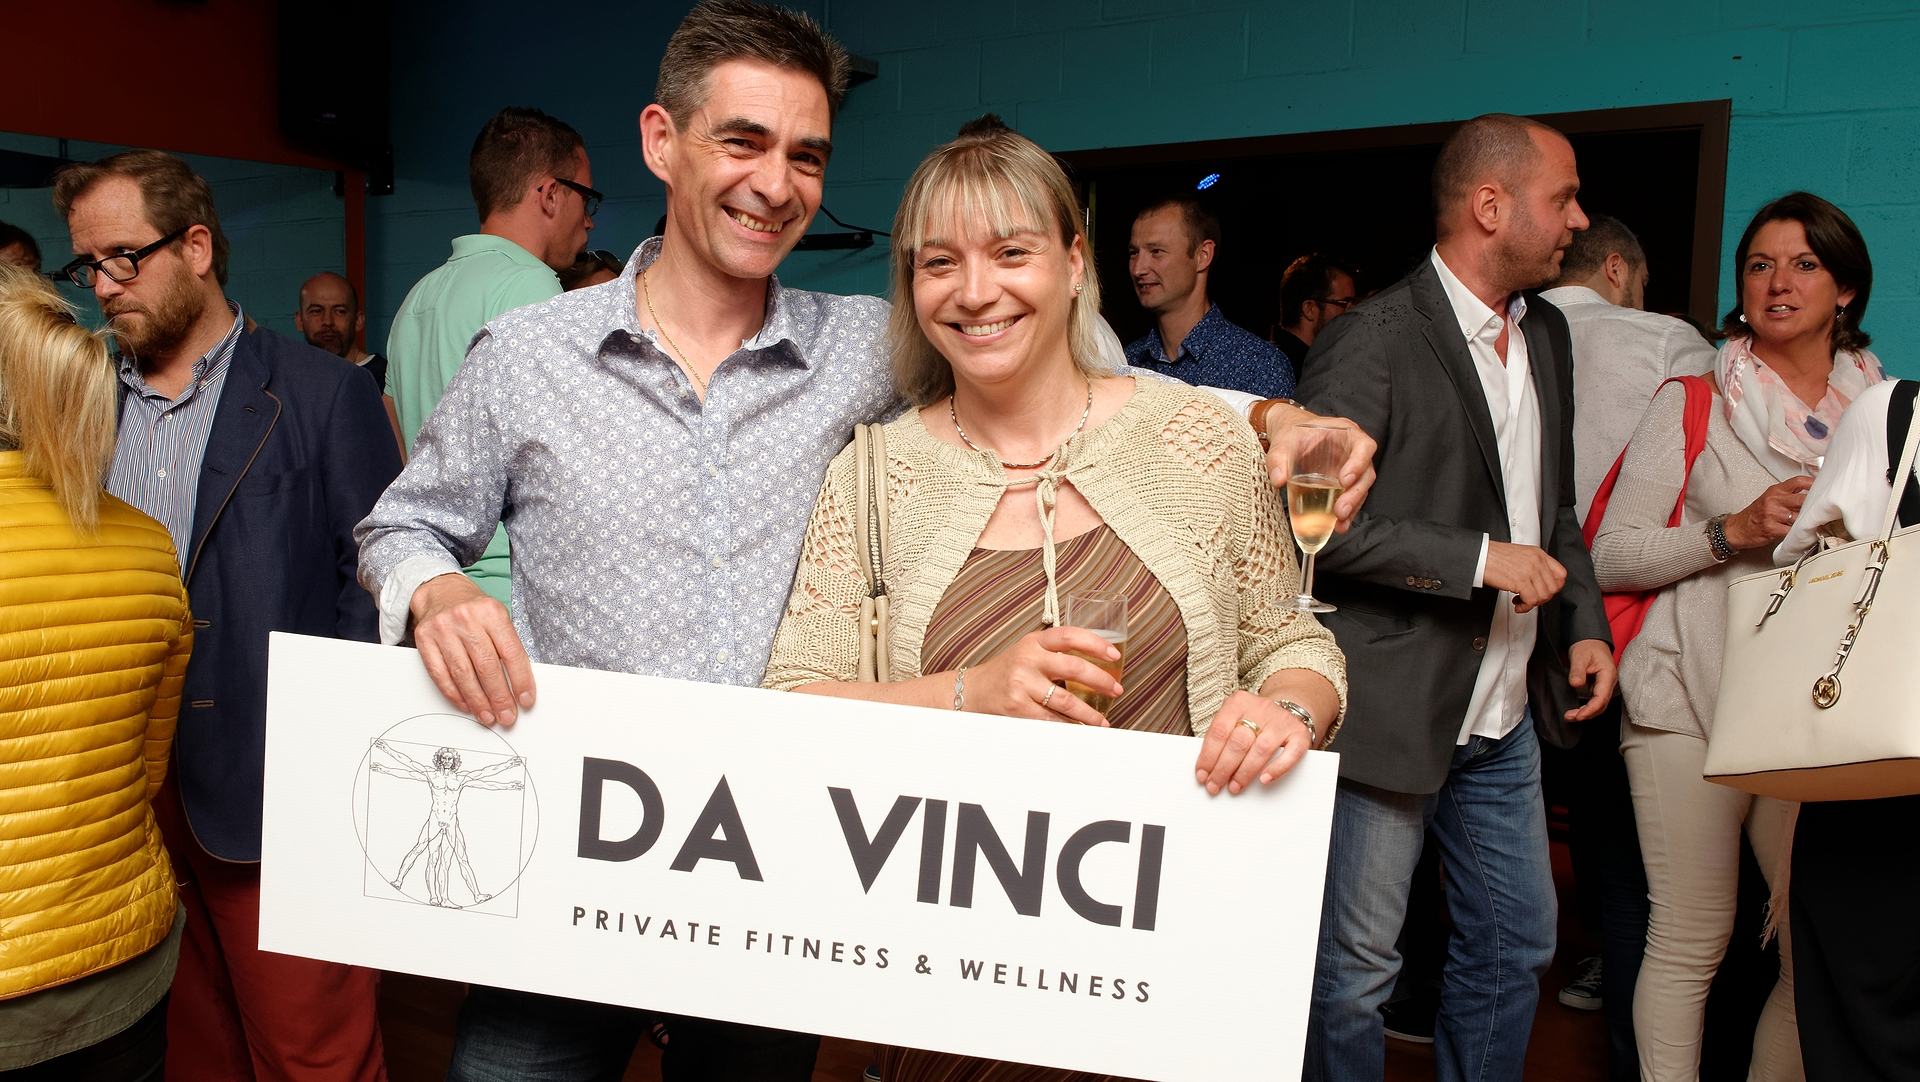 People : Ouverture du New Da Vinci Fitness, Functional Training and coaching à Wavre !